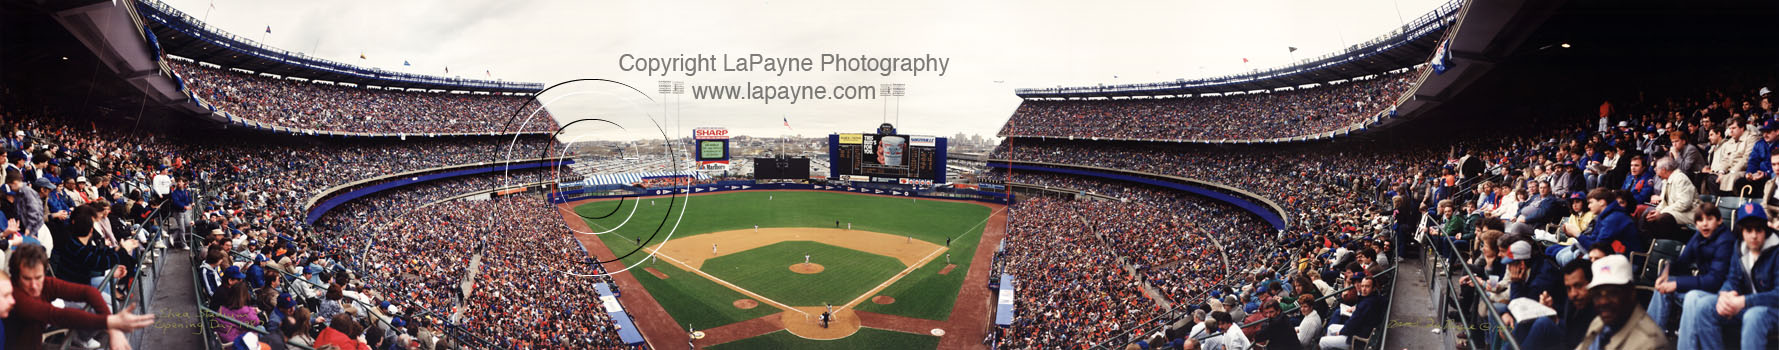 Mets Opening Day 1987 | Shea Stadium - Behind Home